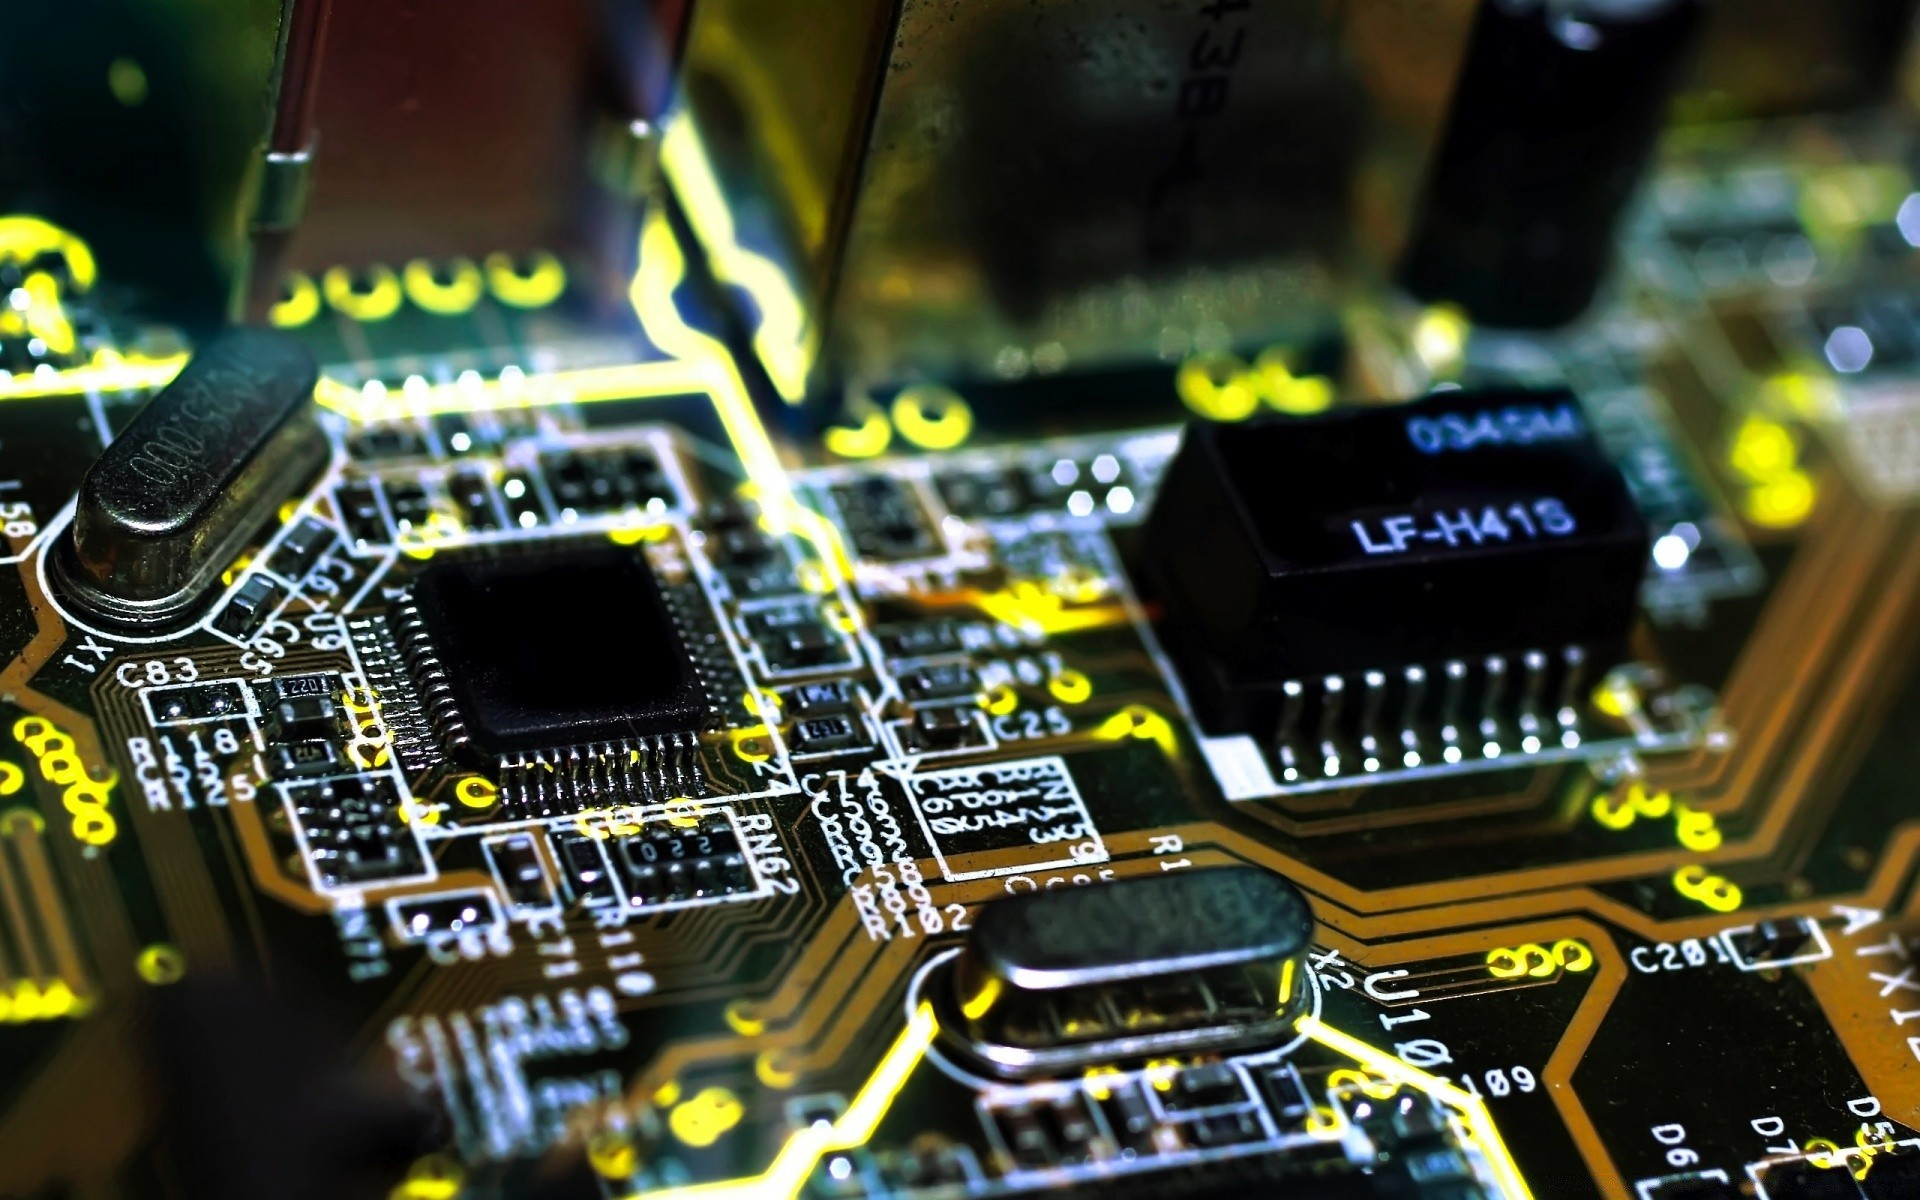 integrated circuit technology An integrated circuit, commonly referred to as an ic, is a microscopic array of electronic circuits at the time, transistors and printed circuit boards were the state-of-the-art electronic technology.